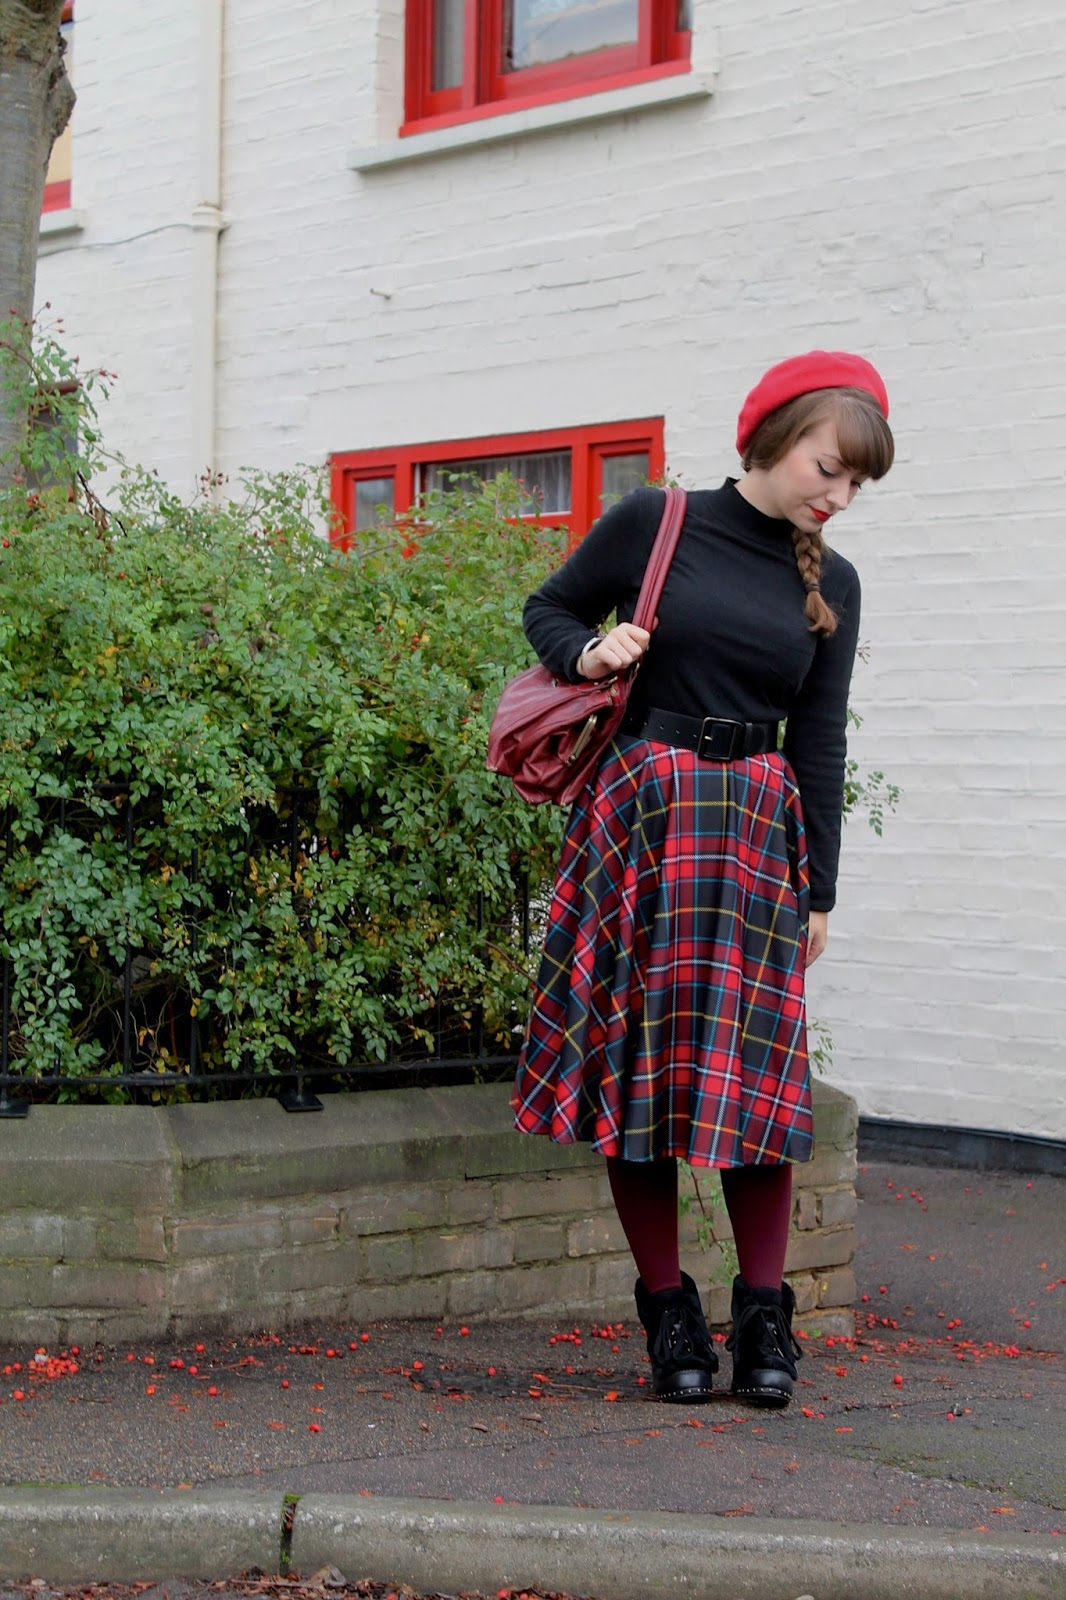 1950s style outfit with plaid full skirt, fur boots and beret